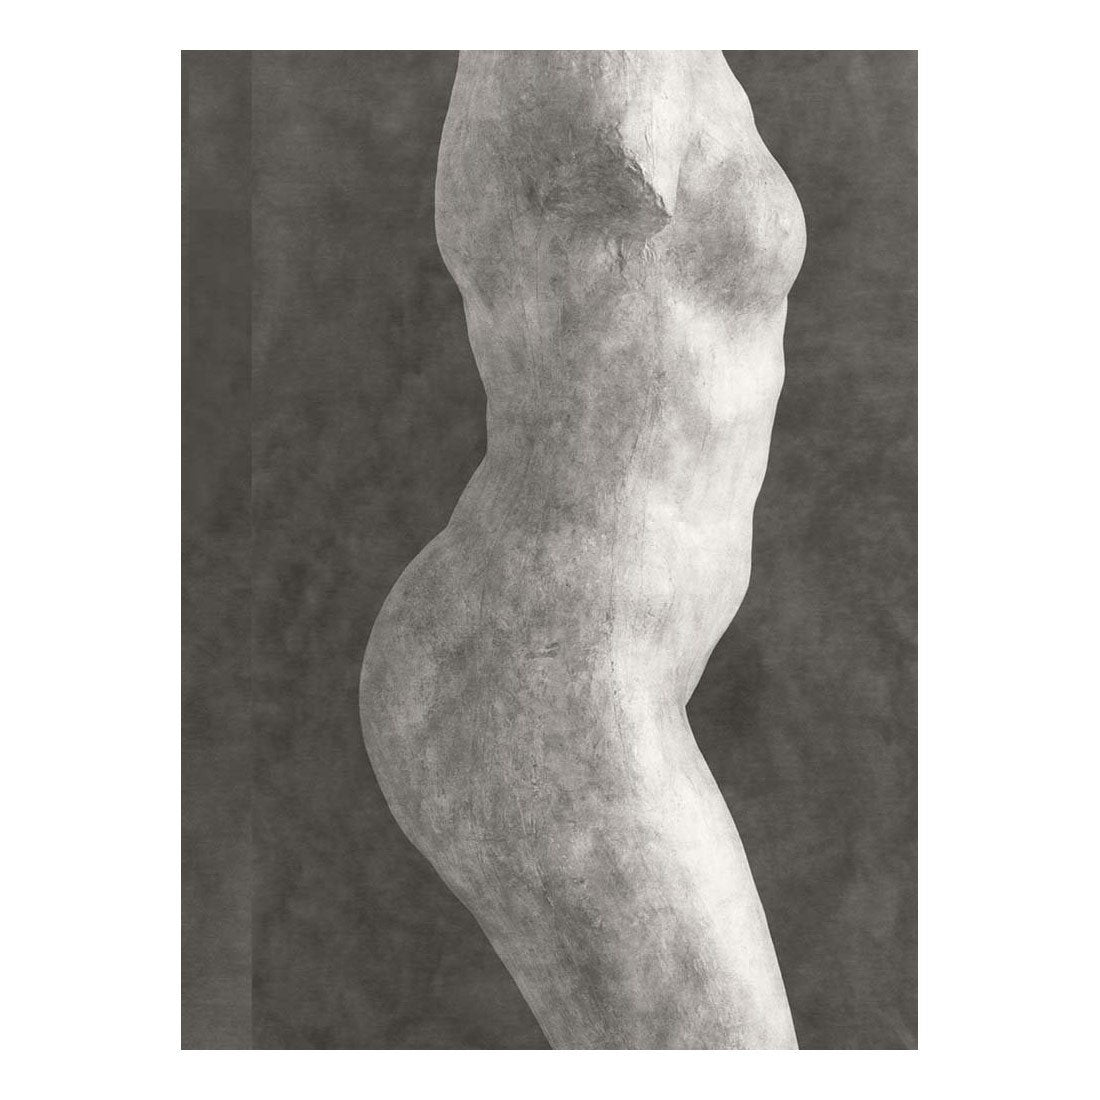 Rodin: Photographs by Emmanuel Berry